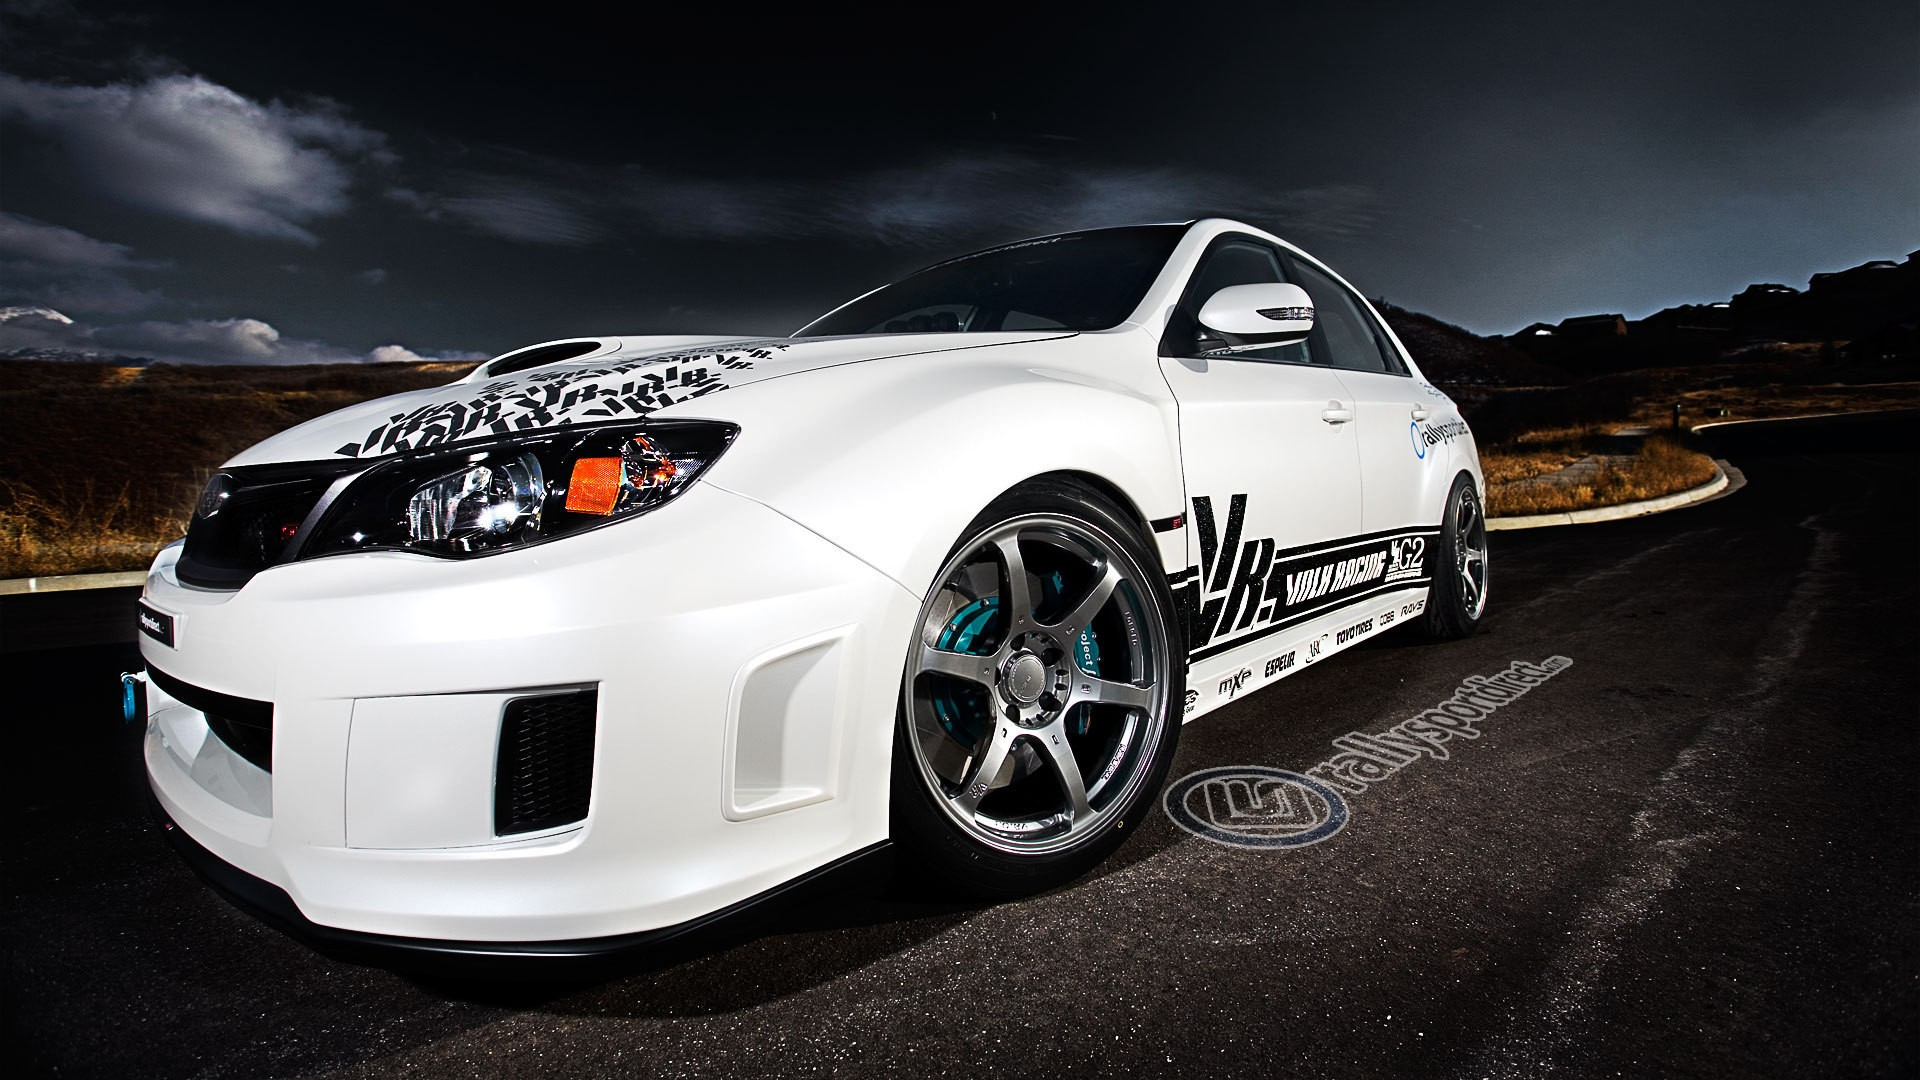 Imagenes De Autos Hd: Cars Tuning Subaru Impreza WRX Jdm Wallpaper